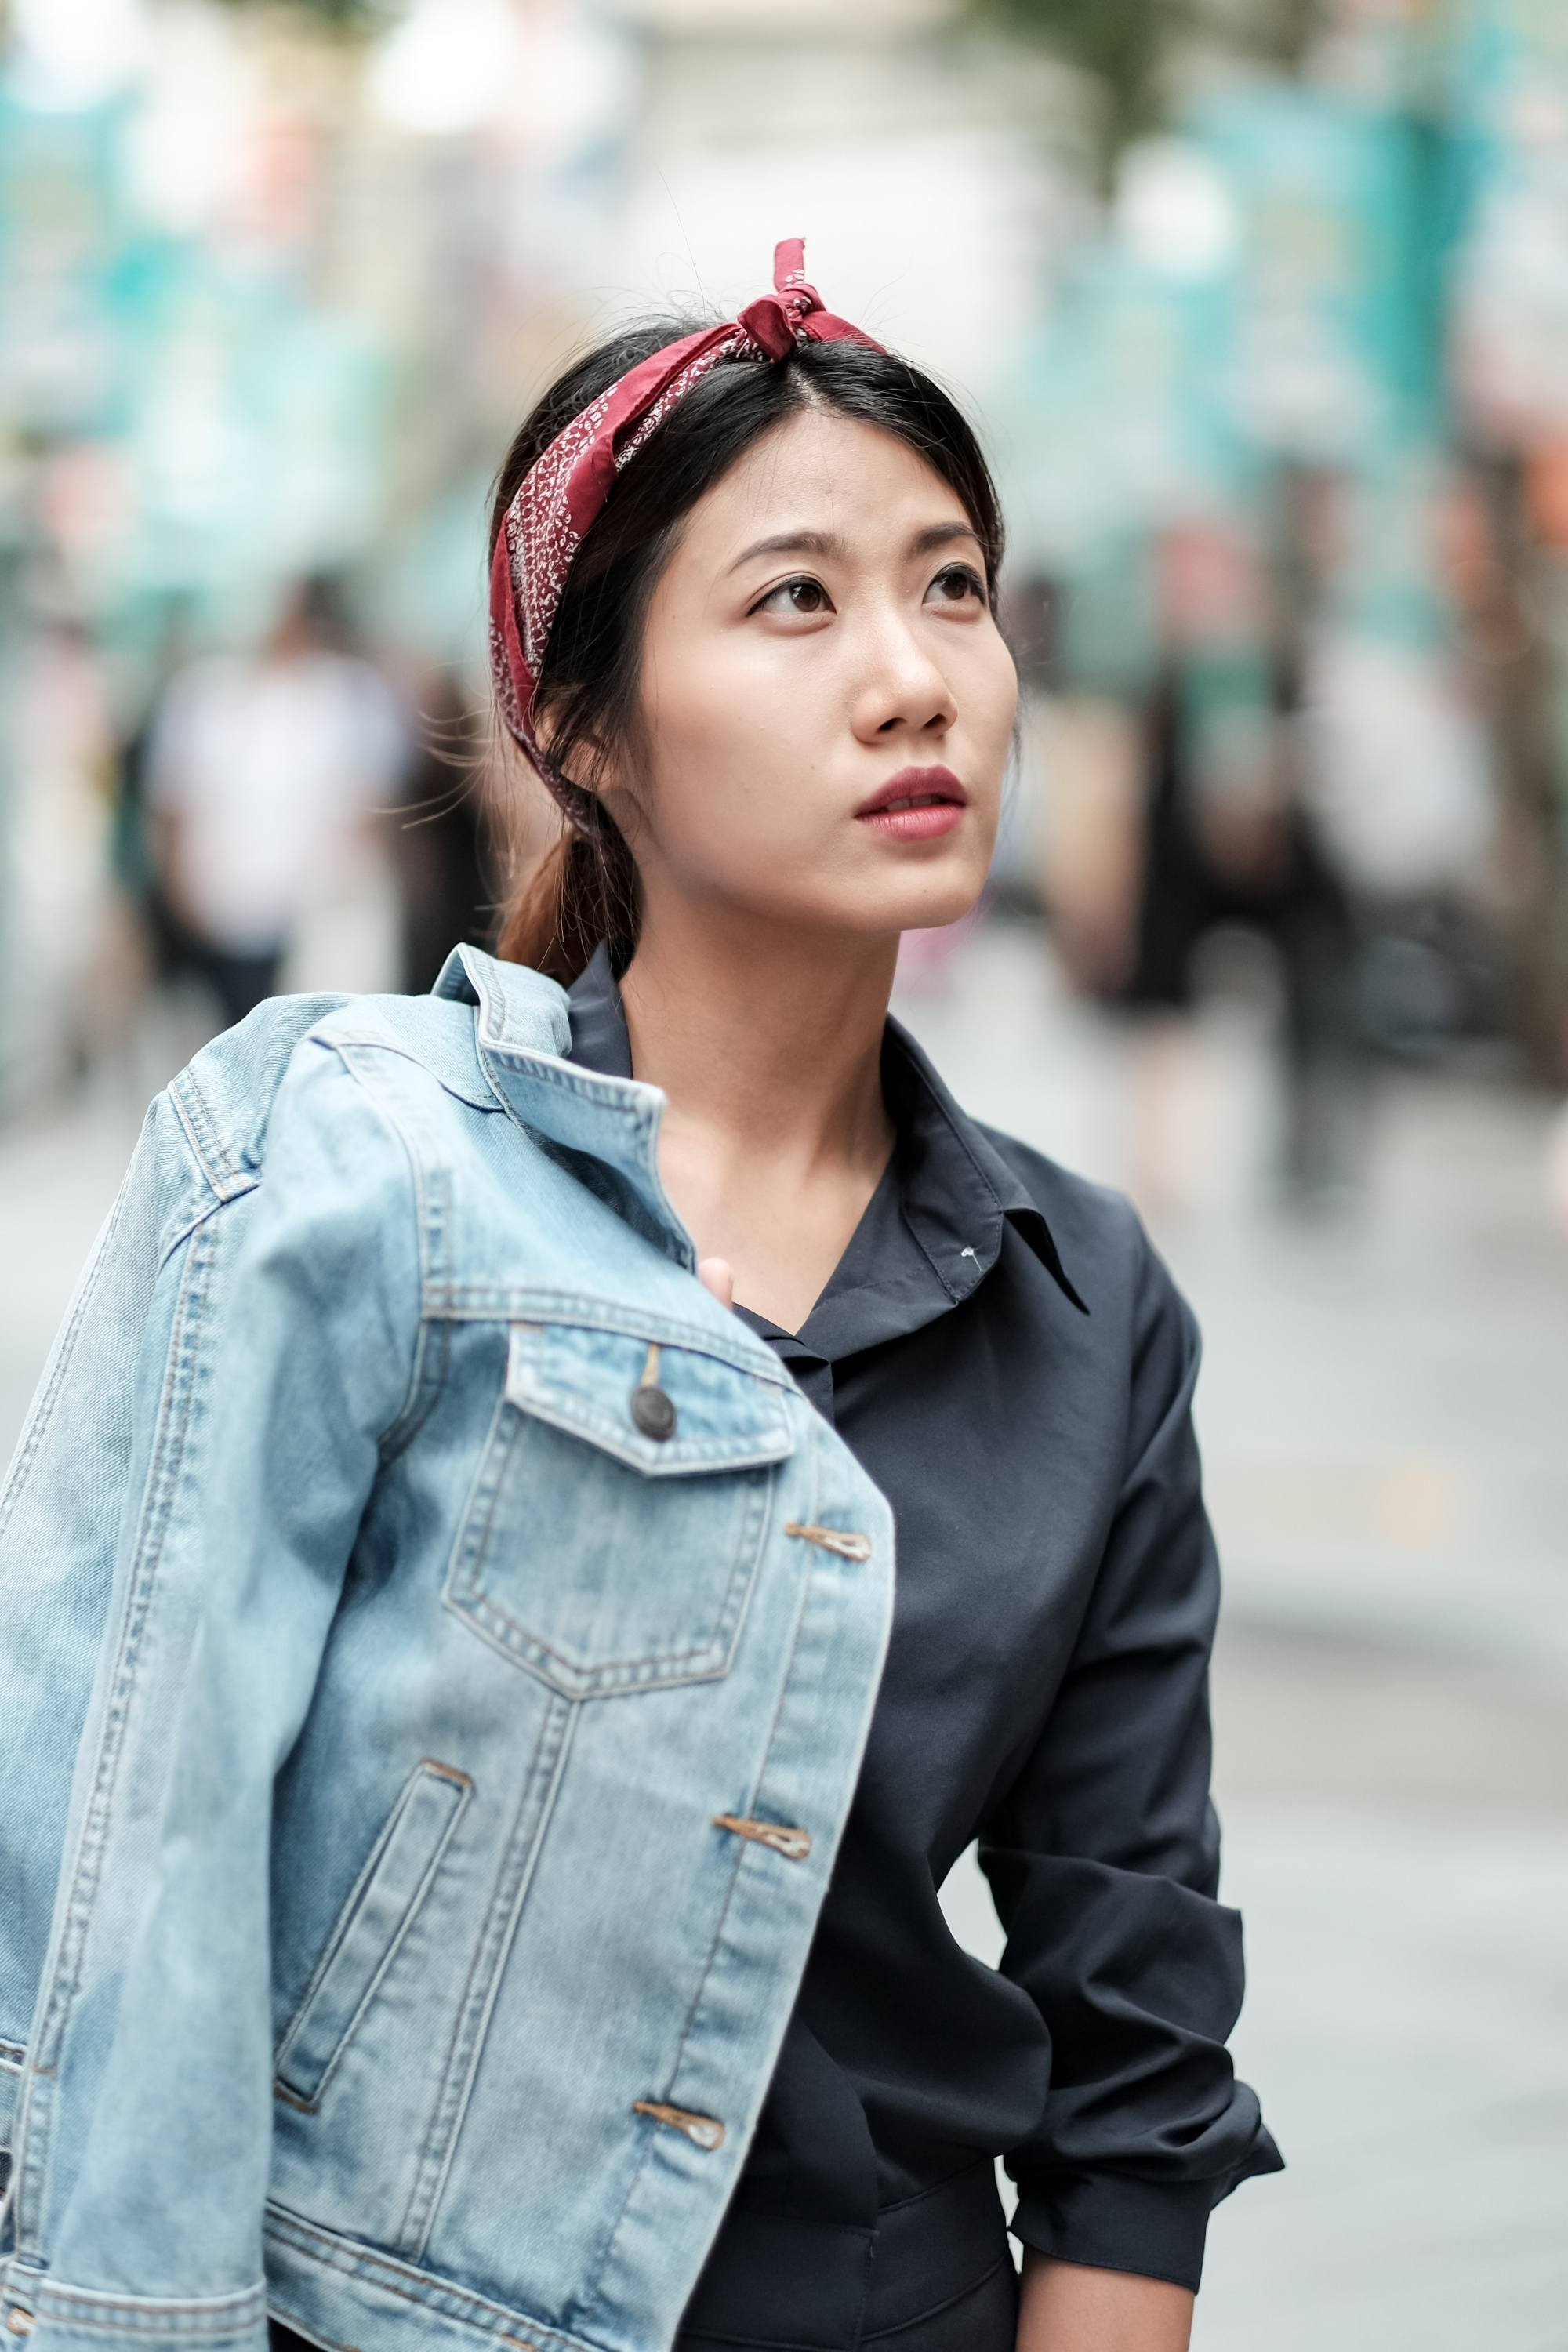 Sleek tied hair: Asian woman with long black hair in a ponytail with red headband wearing denim jacket outdoors